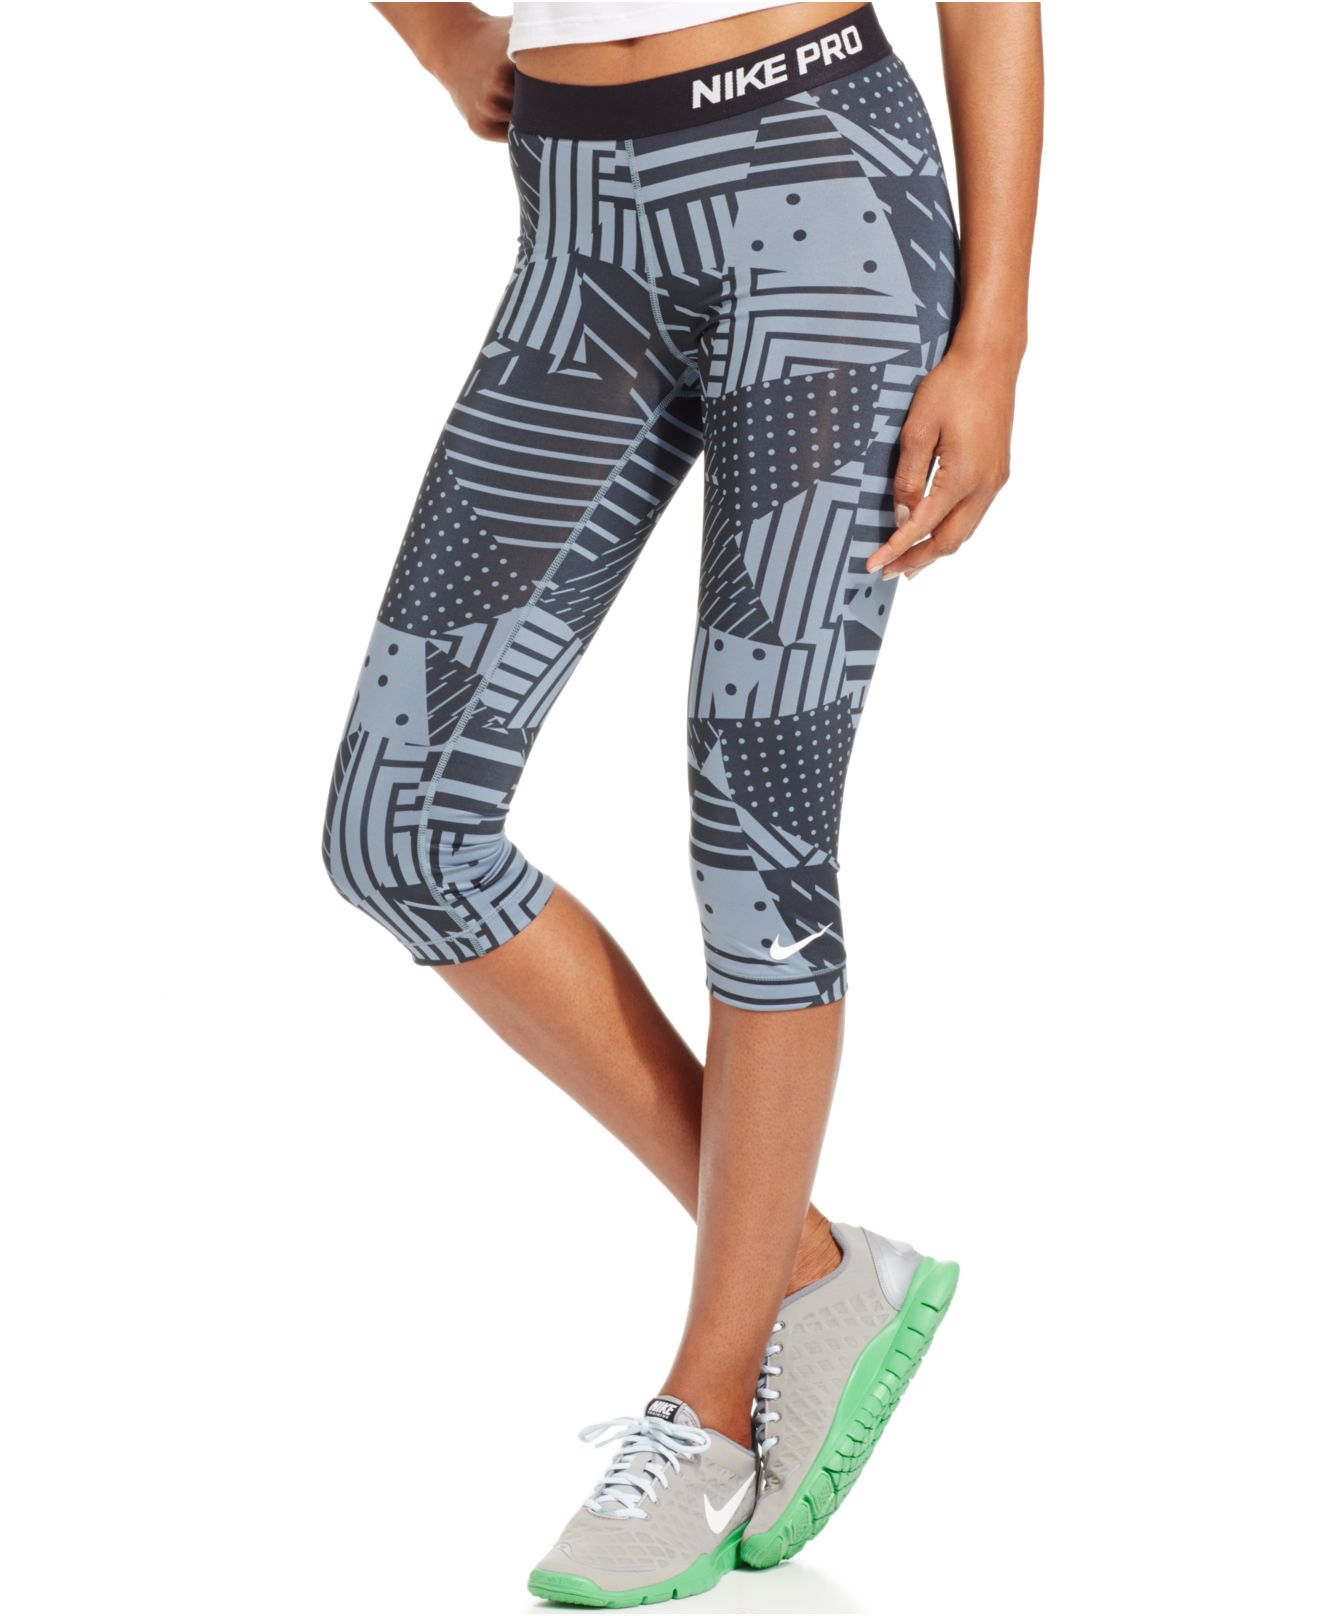 Nike Pro Patchwork Printed Capri Leggings in Black | Lyst